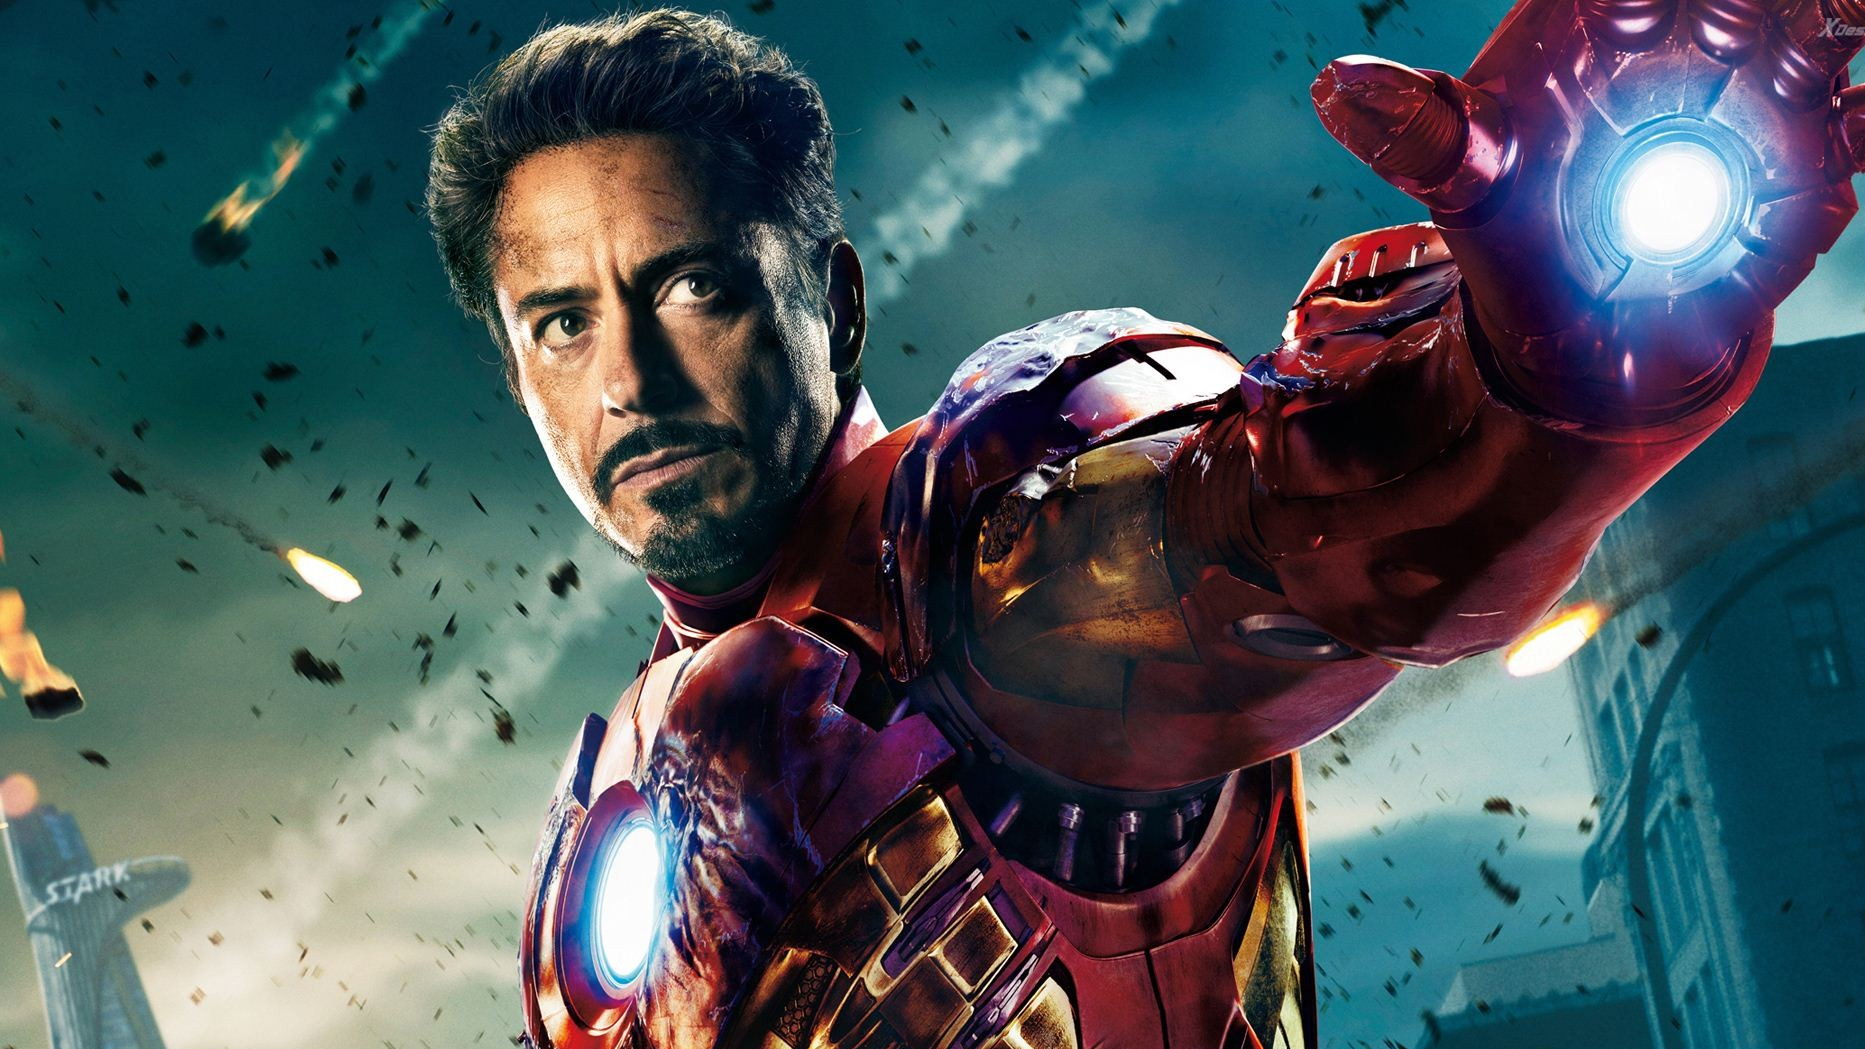 Robert Downey Jr. To Return As Tony Stark In A New Marvel Movie